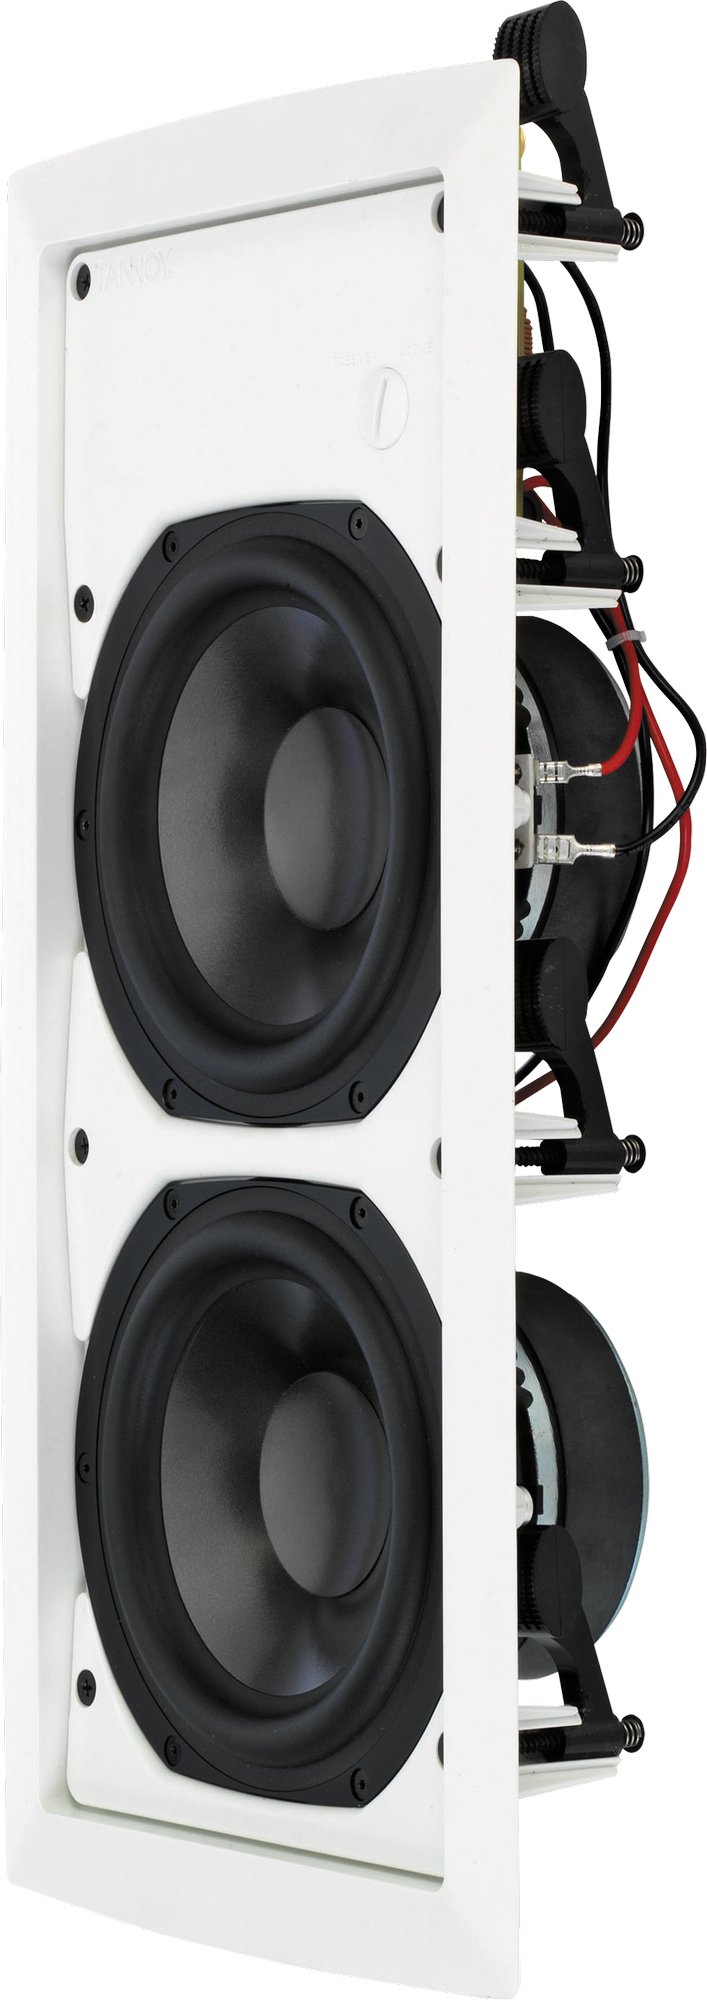 Tannoy  PROMO - IW62 TS